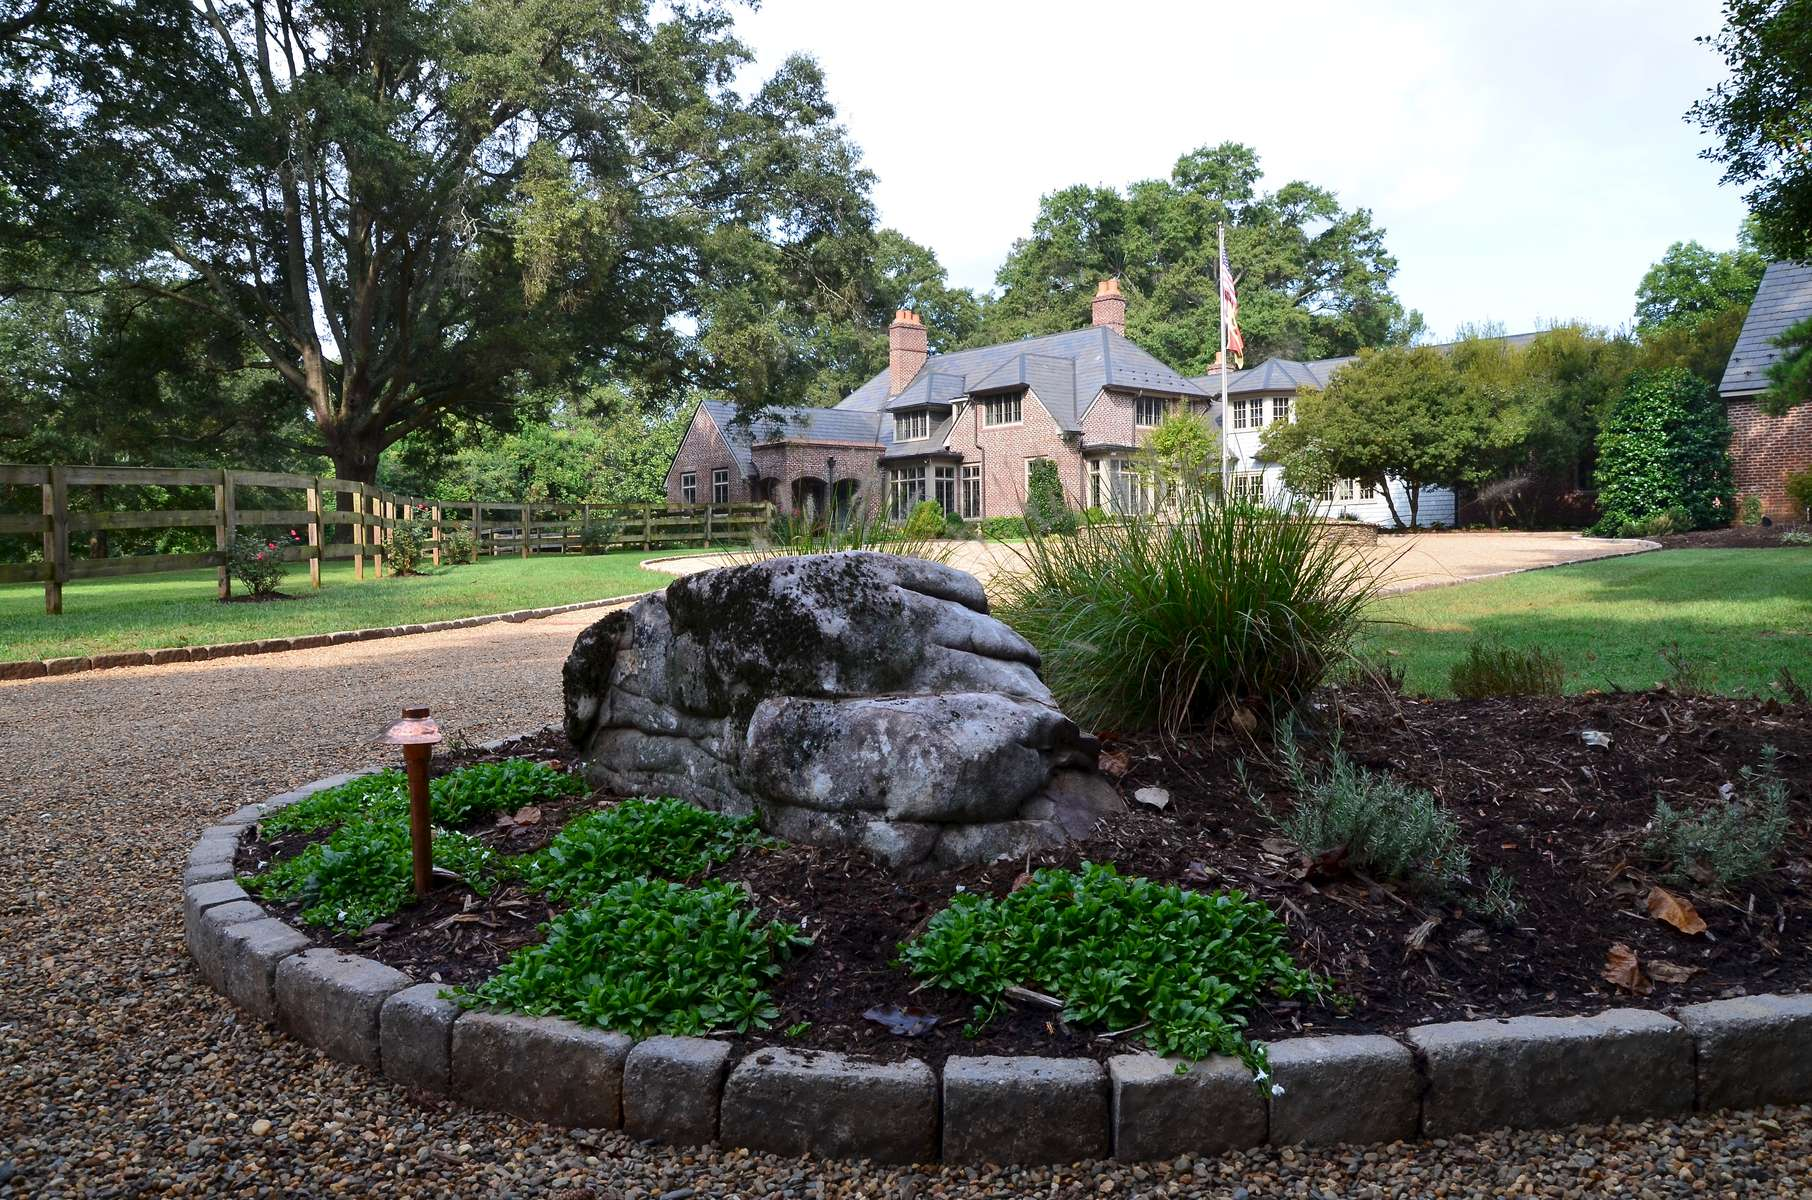 The stone planting bed serves as the first focal point upon entry and delights the senses featuring Mazus, a flowering ground cover, as well as other carefully selected perennials.